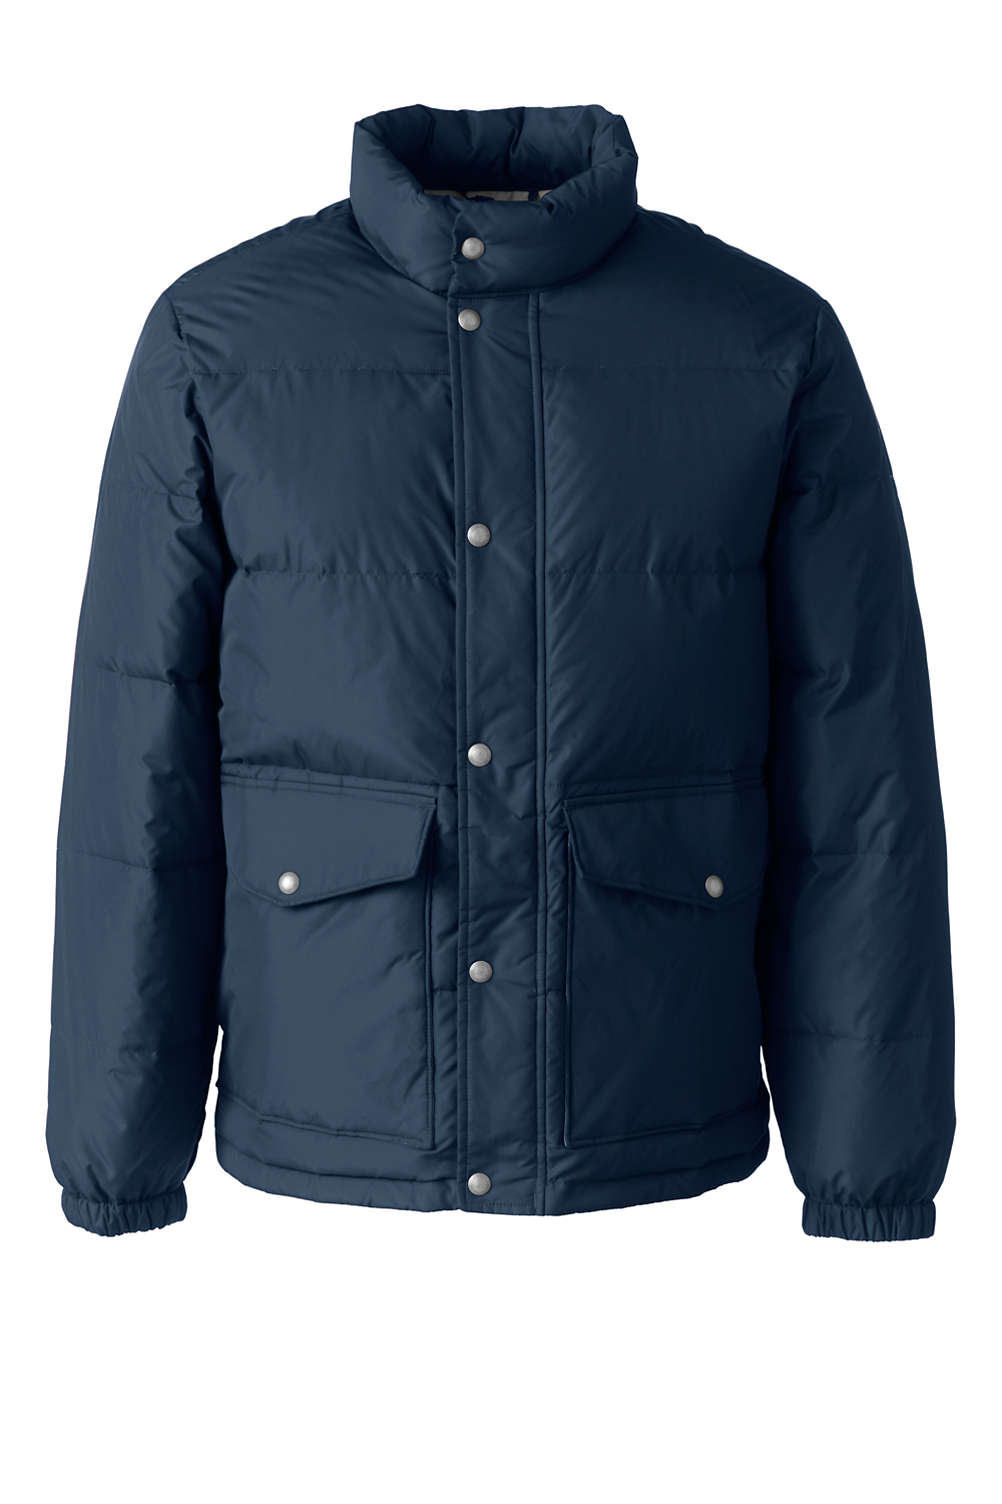 26b72f2a8 Men's 600 Down Jacket from Lands' End